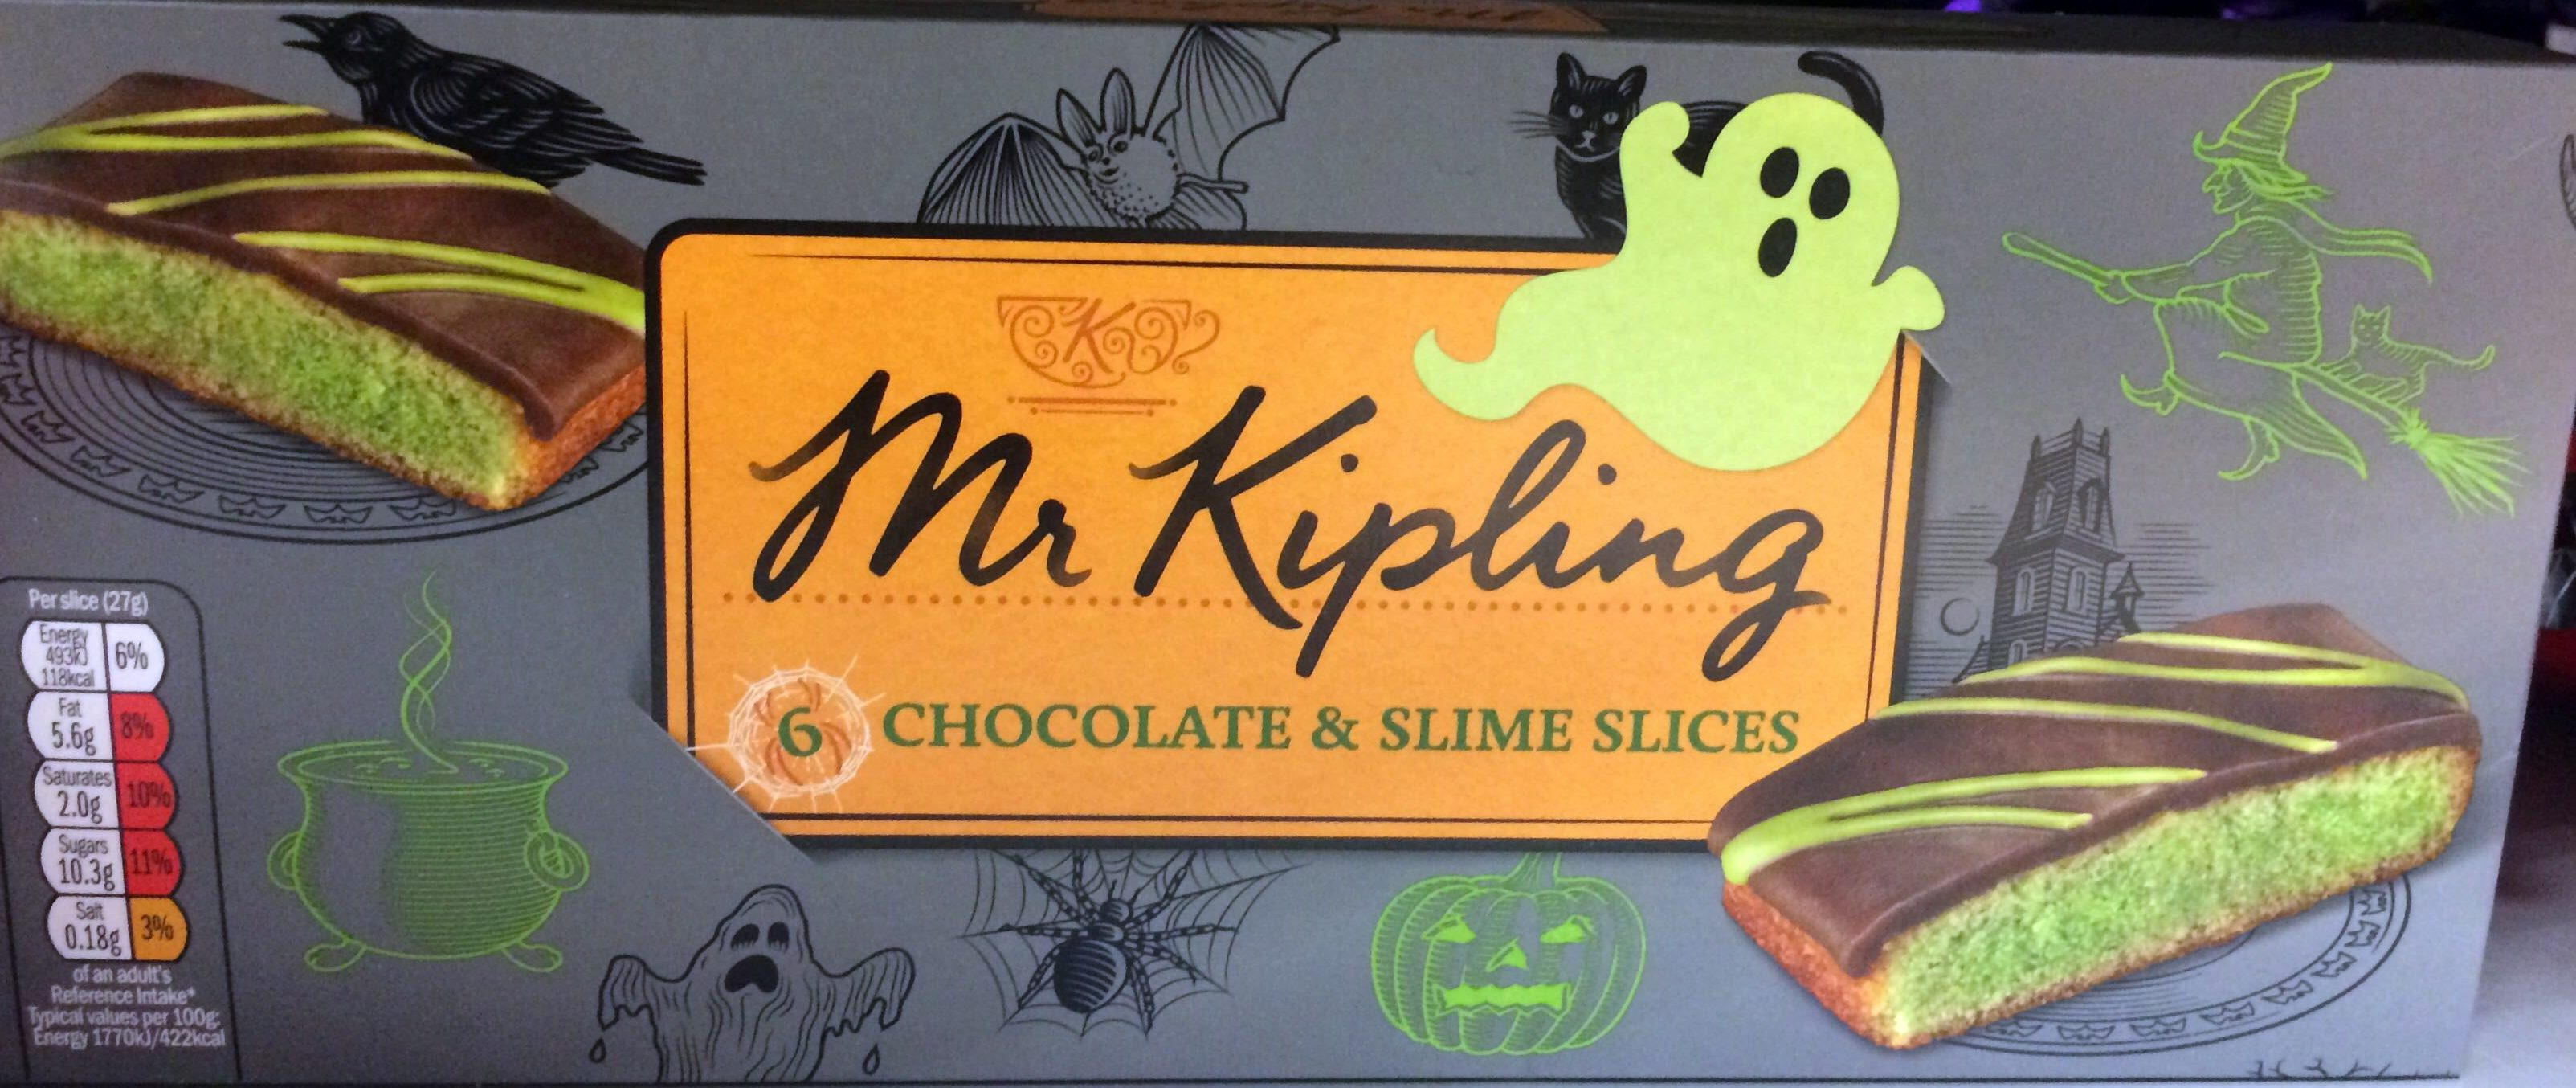 6 chocolate & slime slices - Product